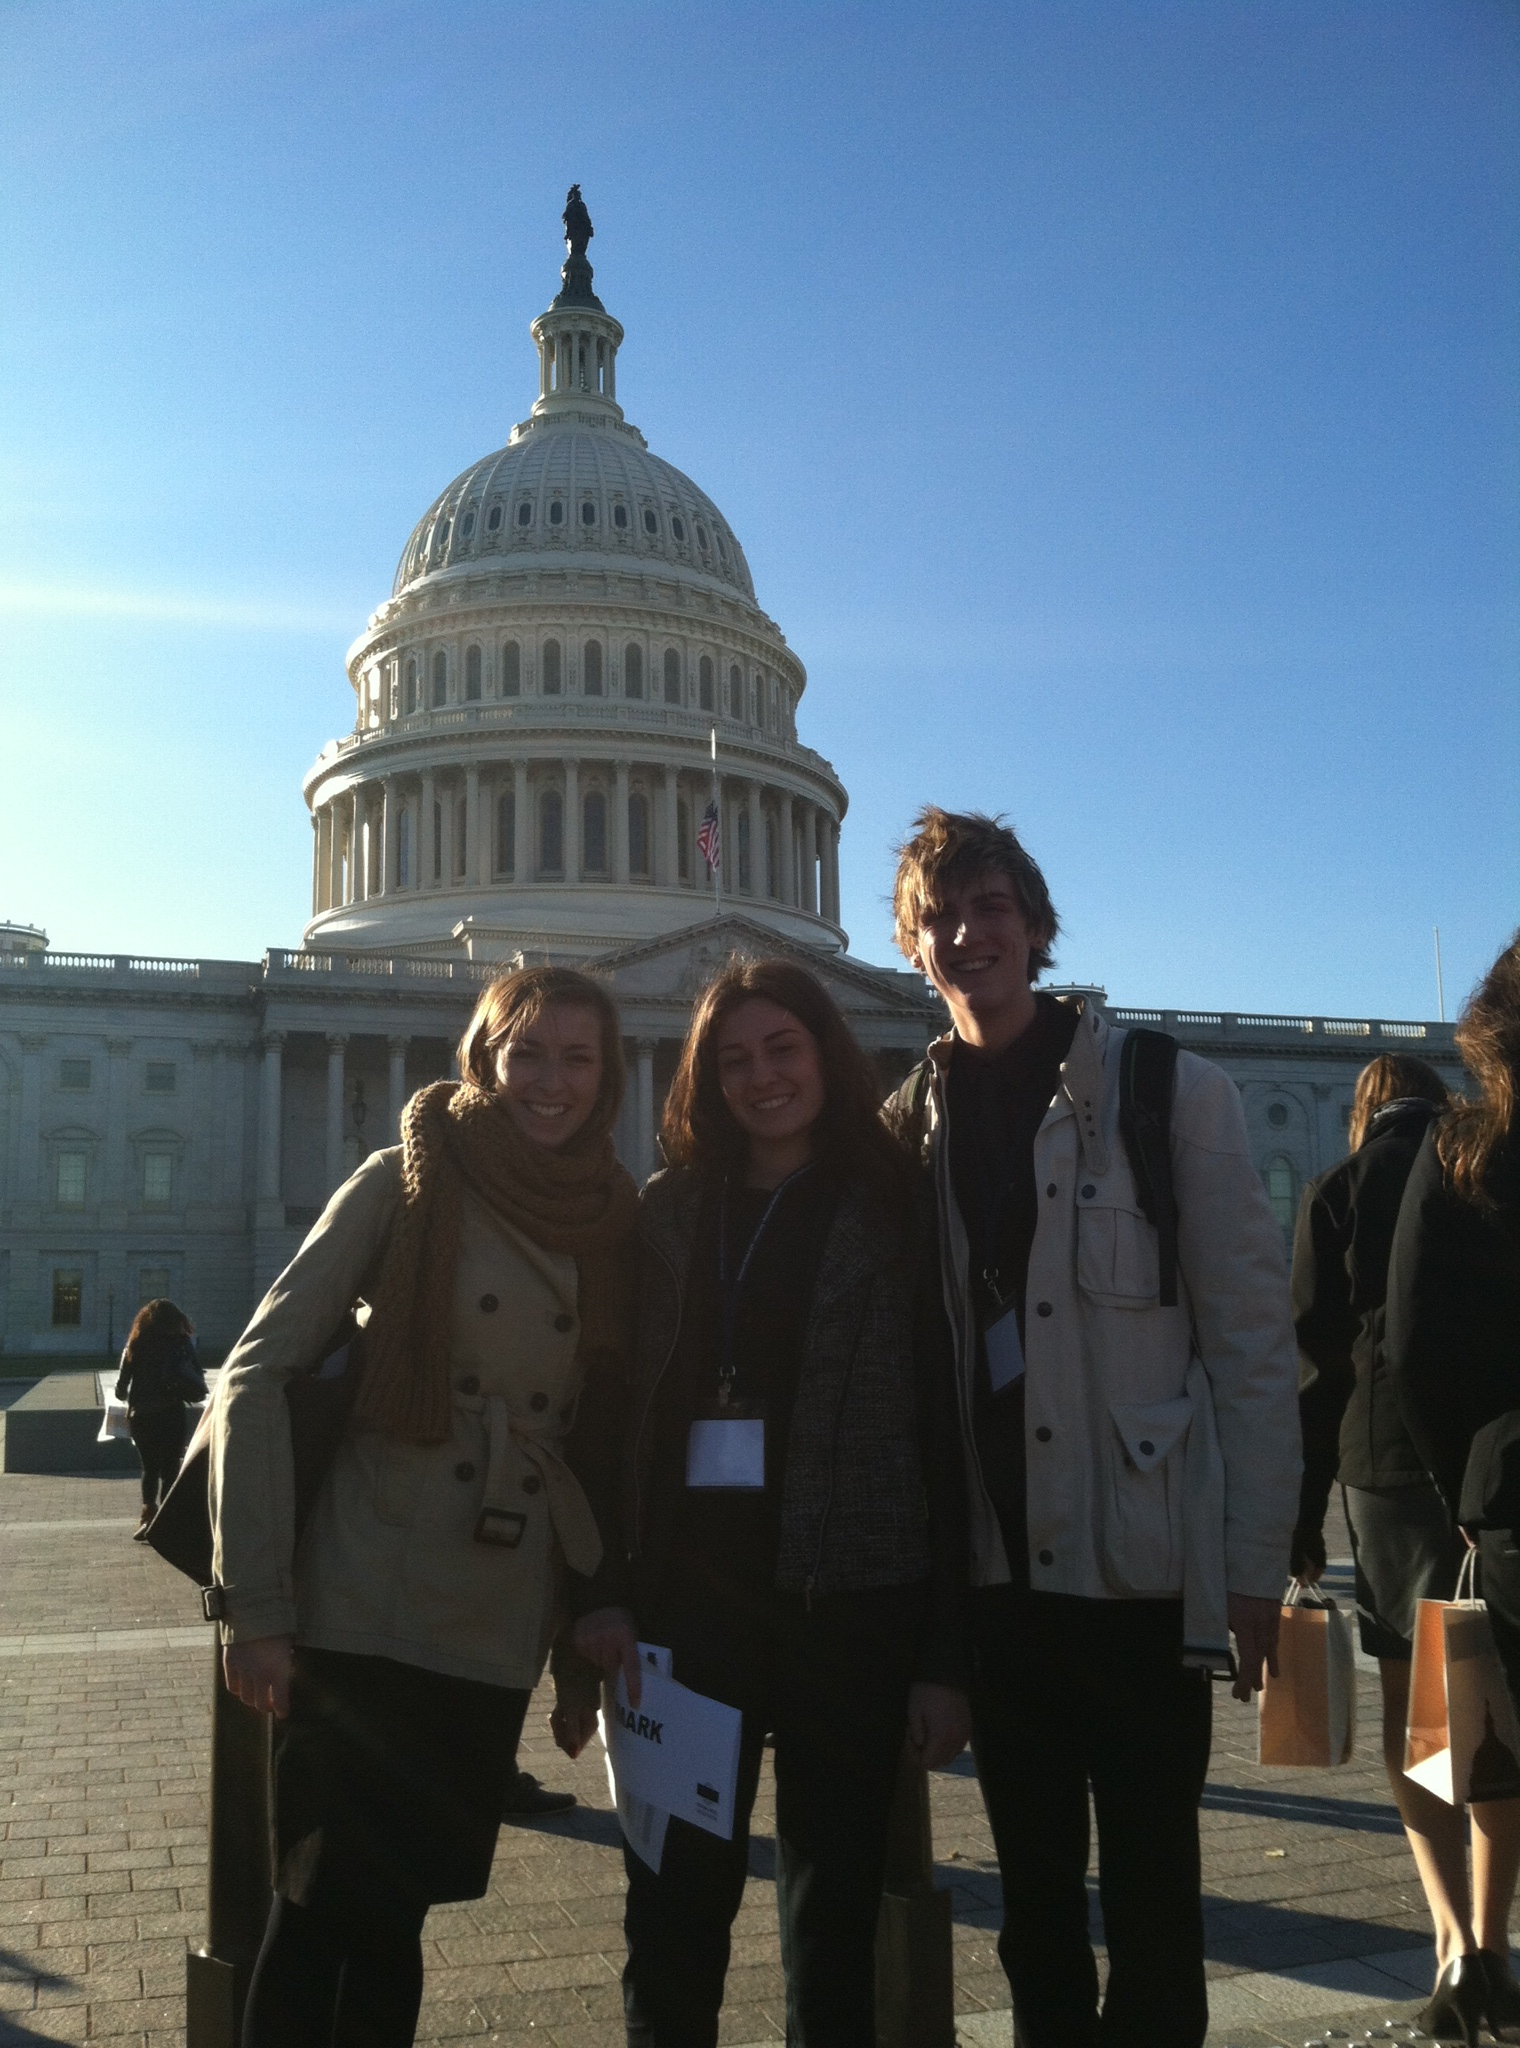 Kyla Korvne, Jessie Meredith and Cayman Mitchell, Pace University New York City Model UN students visiting Congress while at the 2013 National Model UN conference in Washington DC.